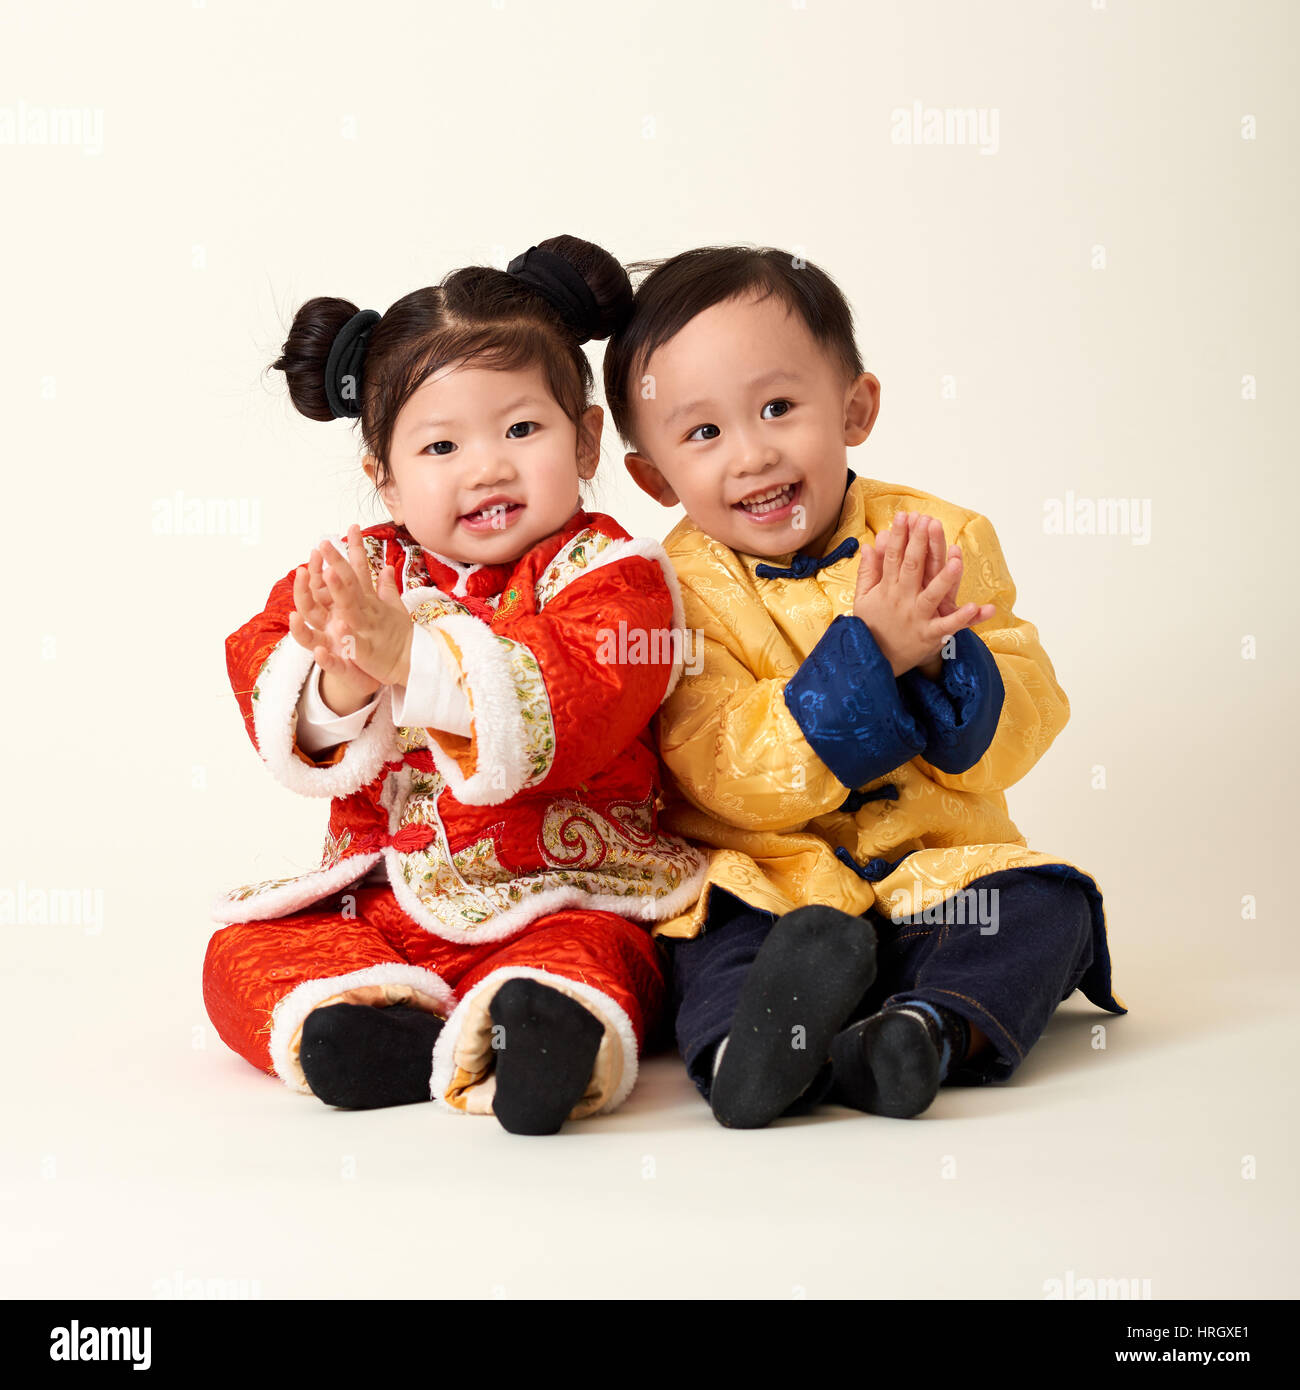 Chinese baby boy and girl in traditional Chinese New Year outfit     Chinese baby boy and girl in traditional Chinese New Year outfit  celebrating Lunar New Year